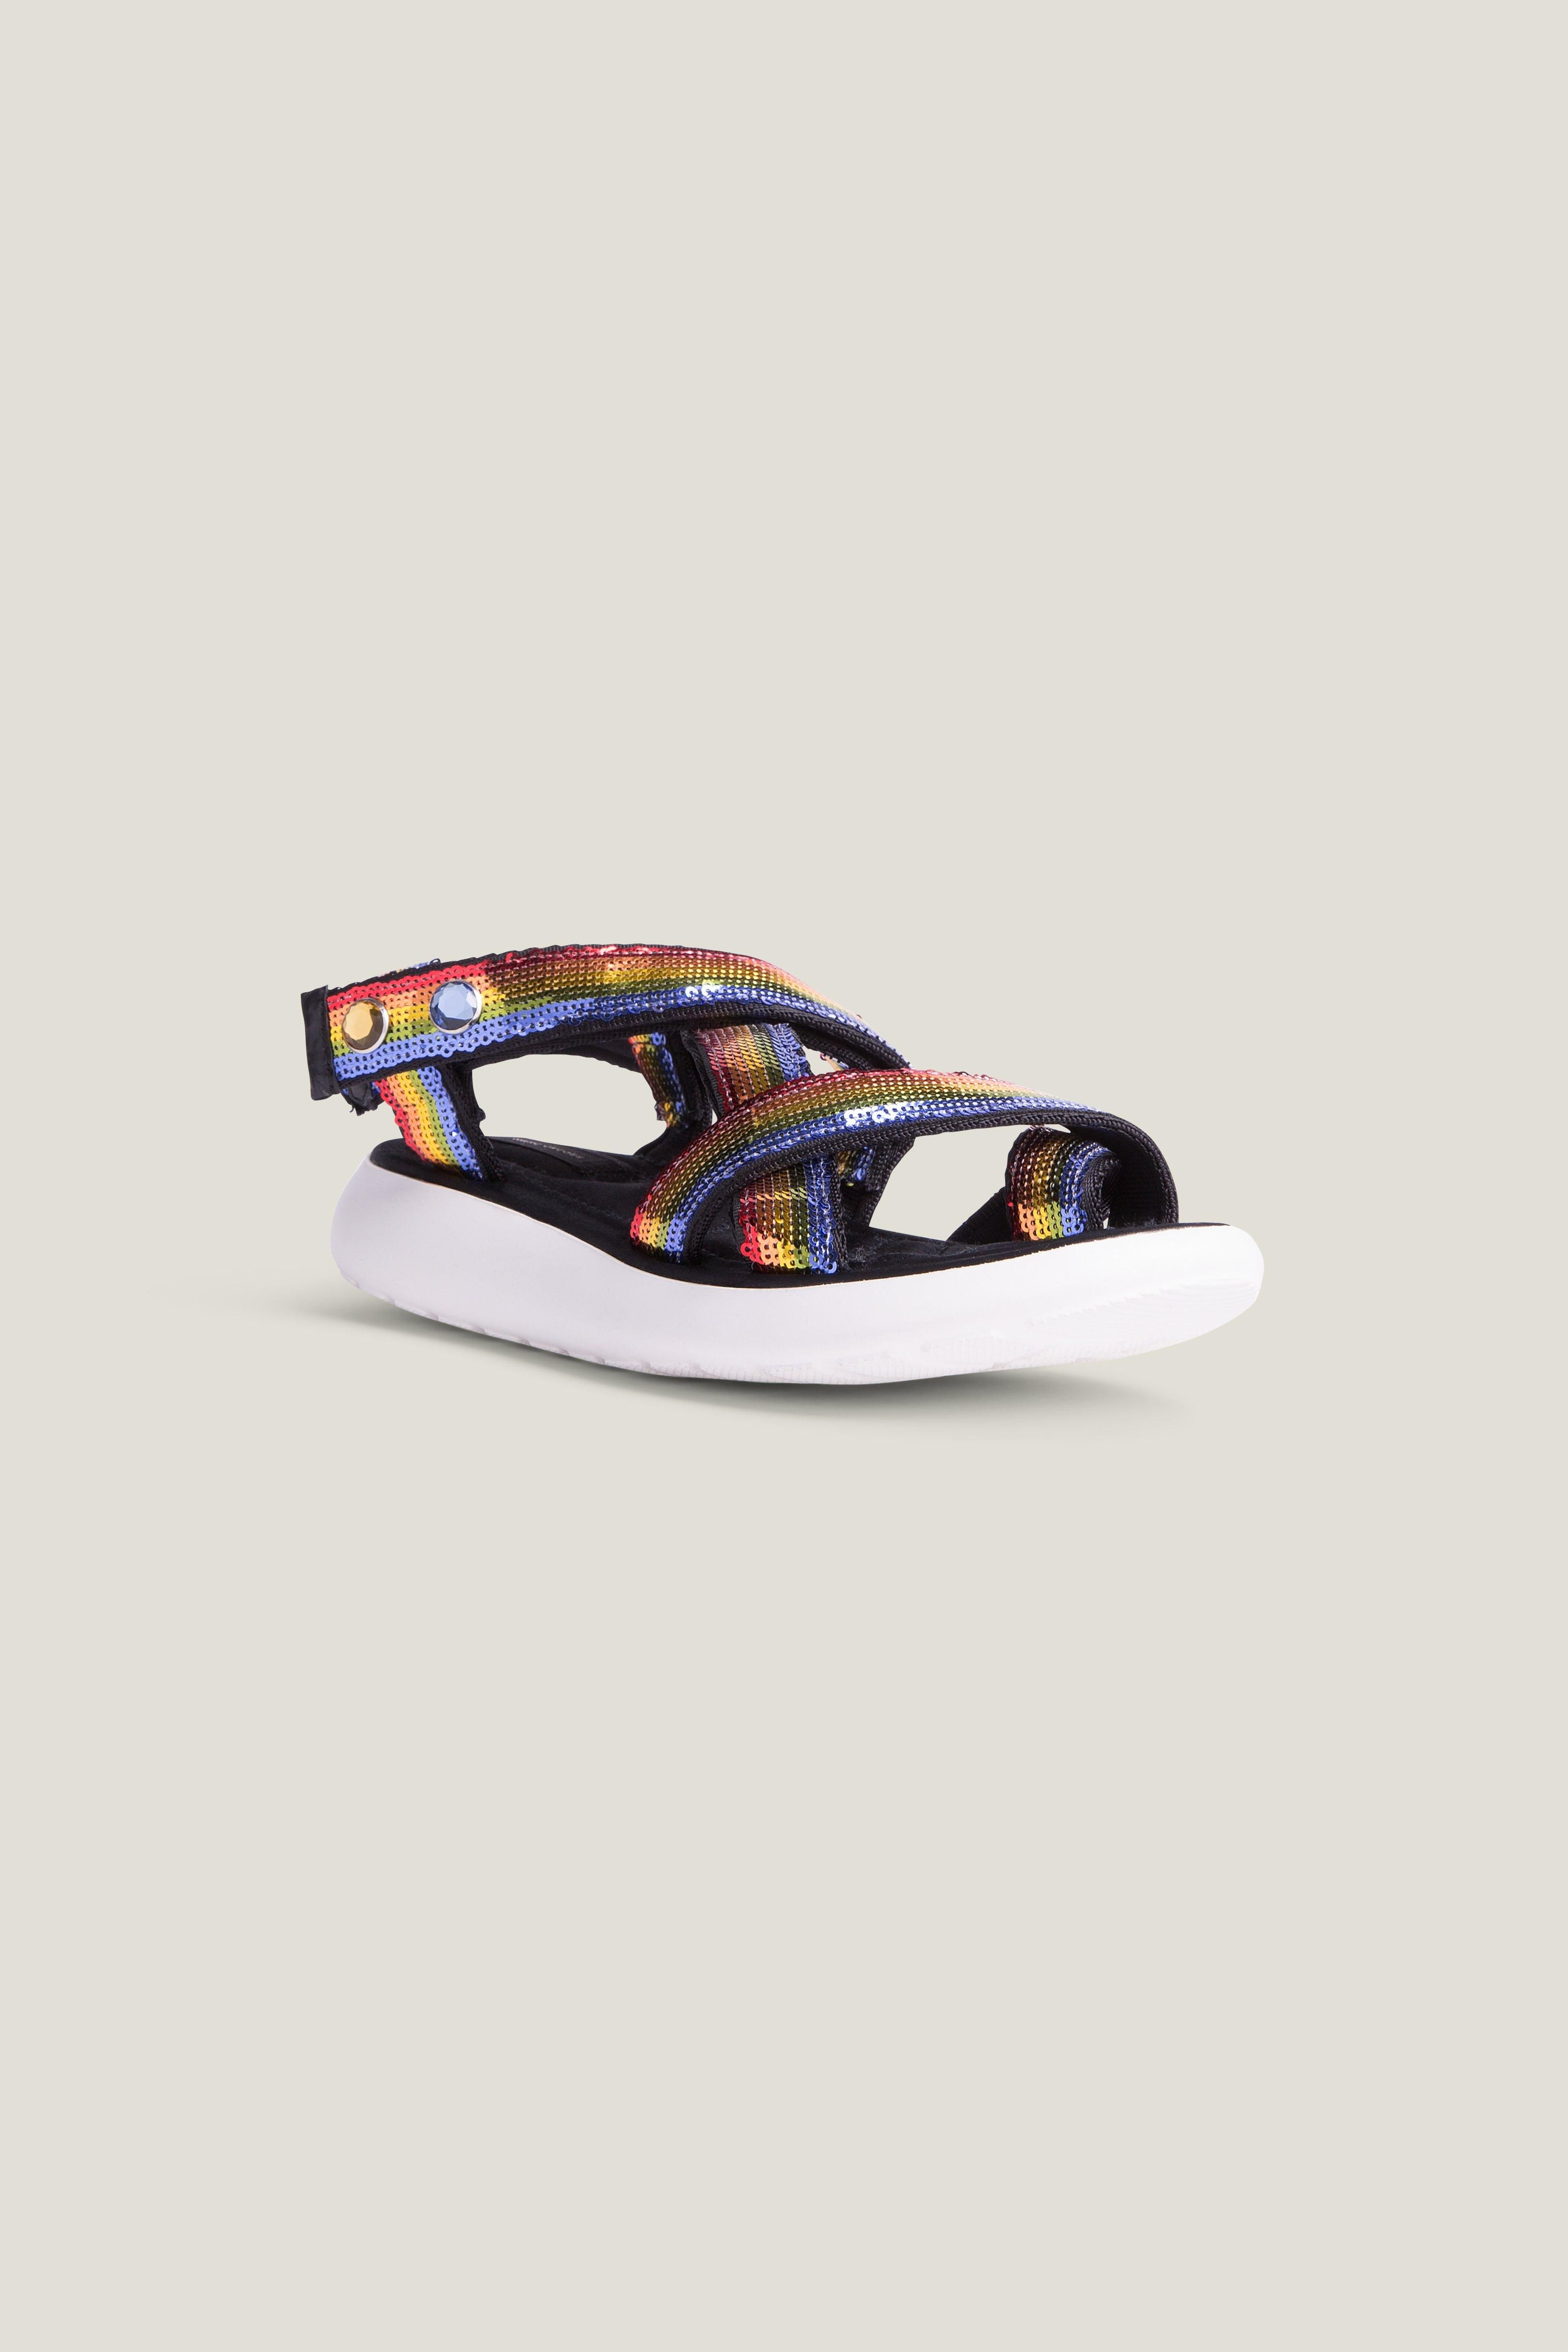 MARC JACOBS Comet Sport Sandal. #marcjacobs #shoes #